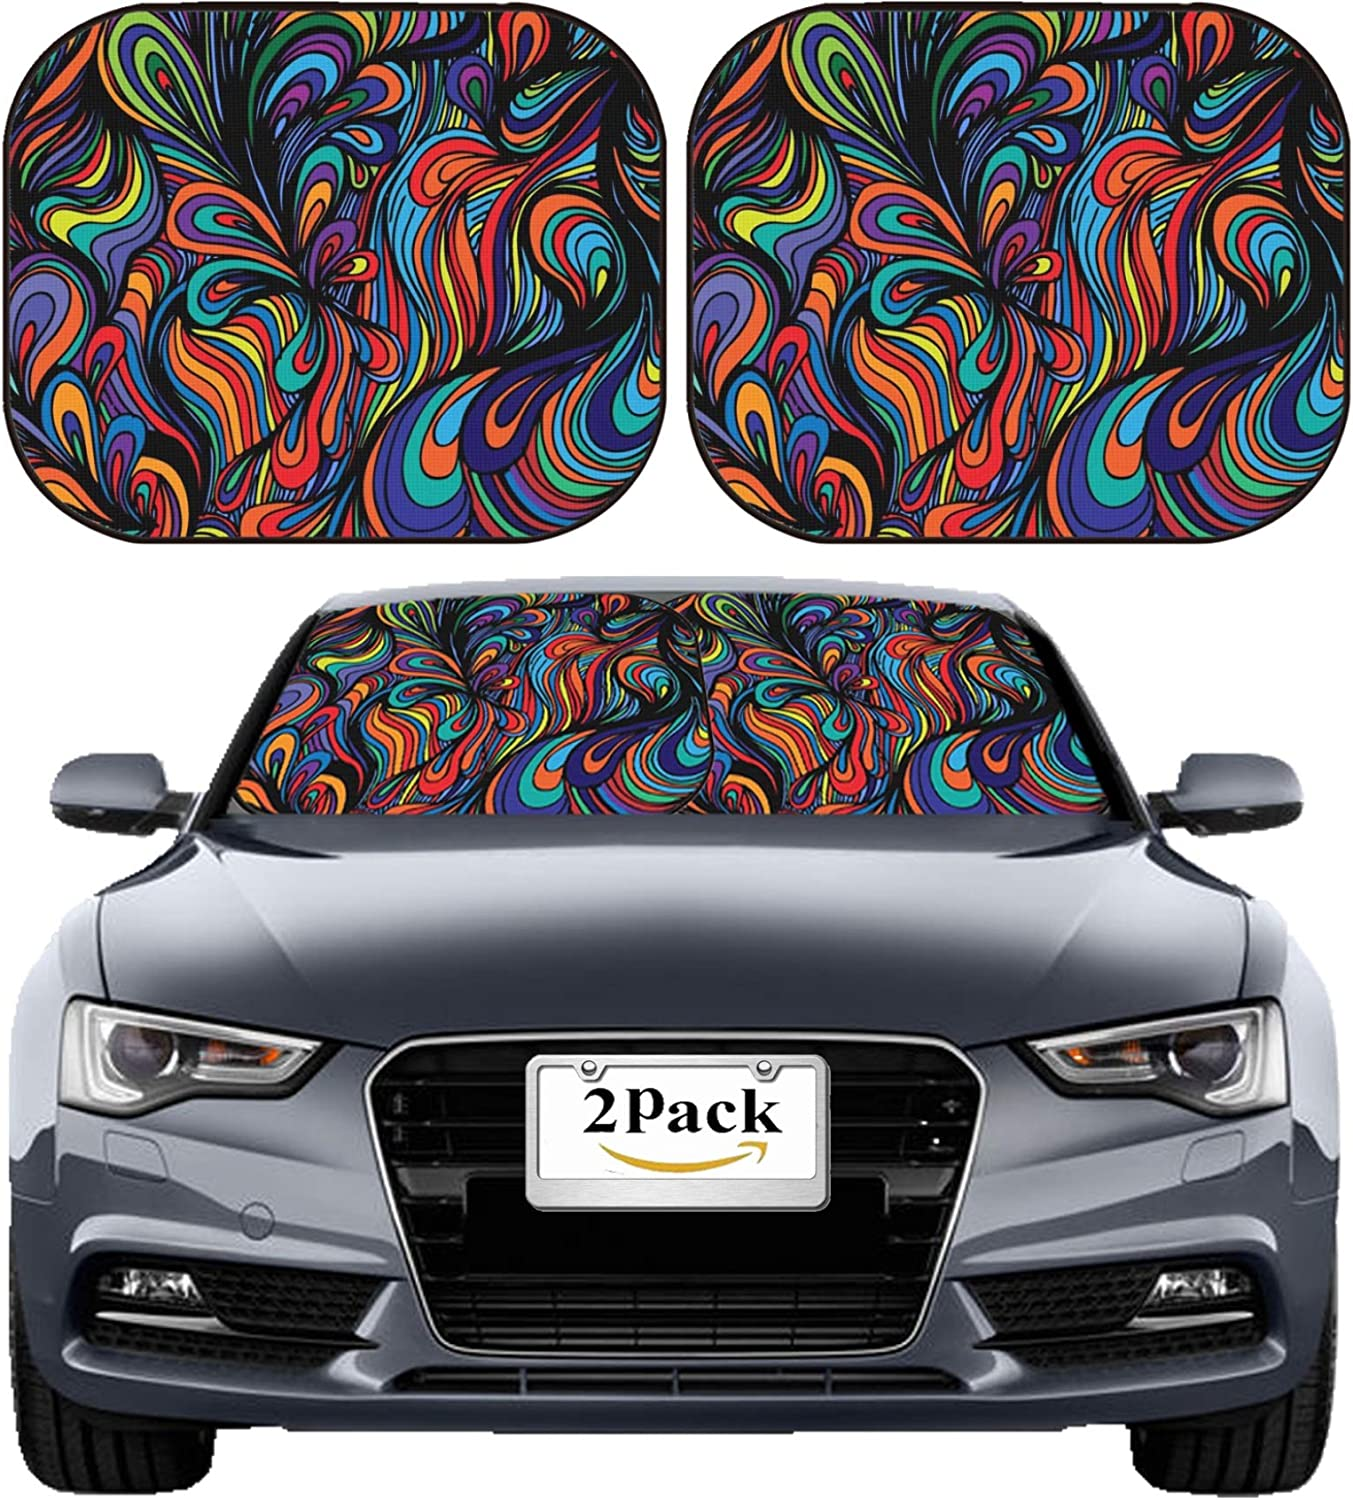 MSD NEW before selling ☆ Car Sun Shade Windshield Sunshade Bloc Pack Fit Universal 2 All items in the store